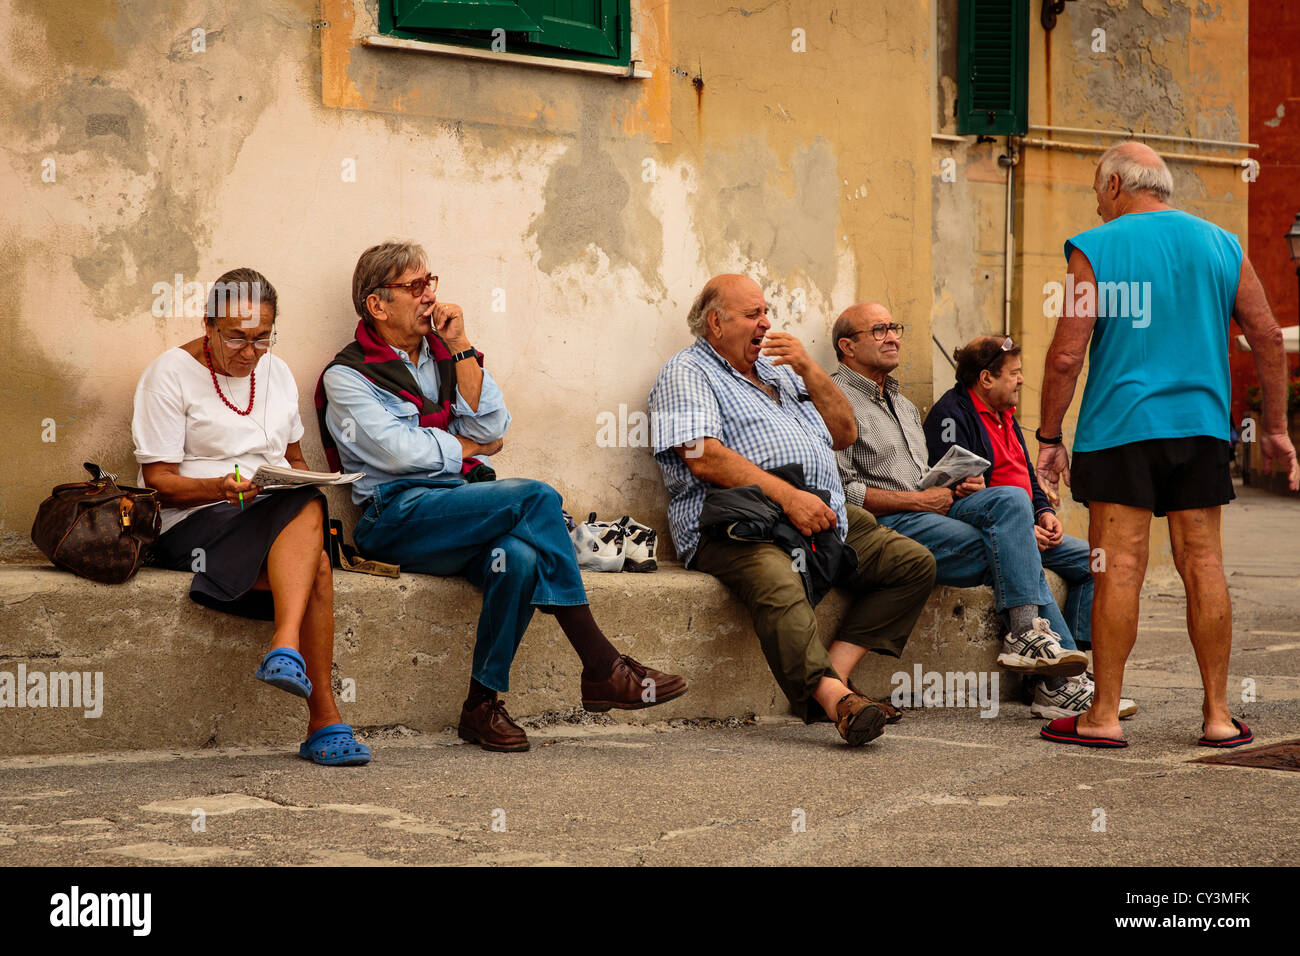 Elderly people relaxing in Camogli, Italy - Stock Image